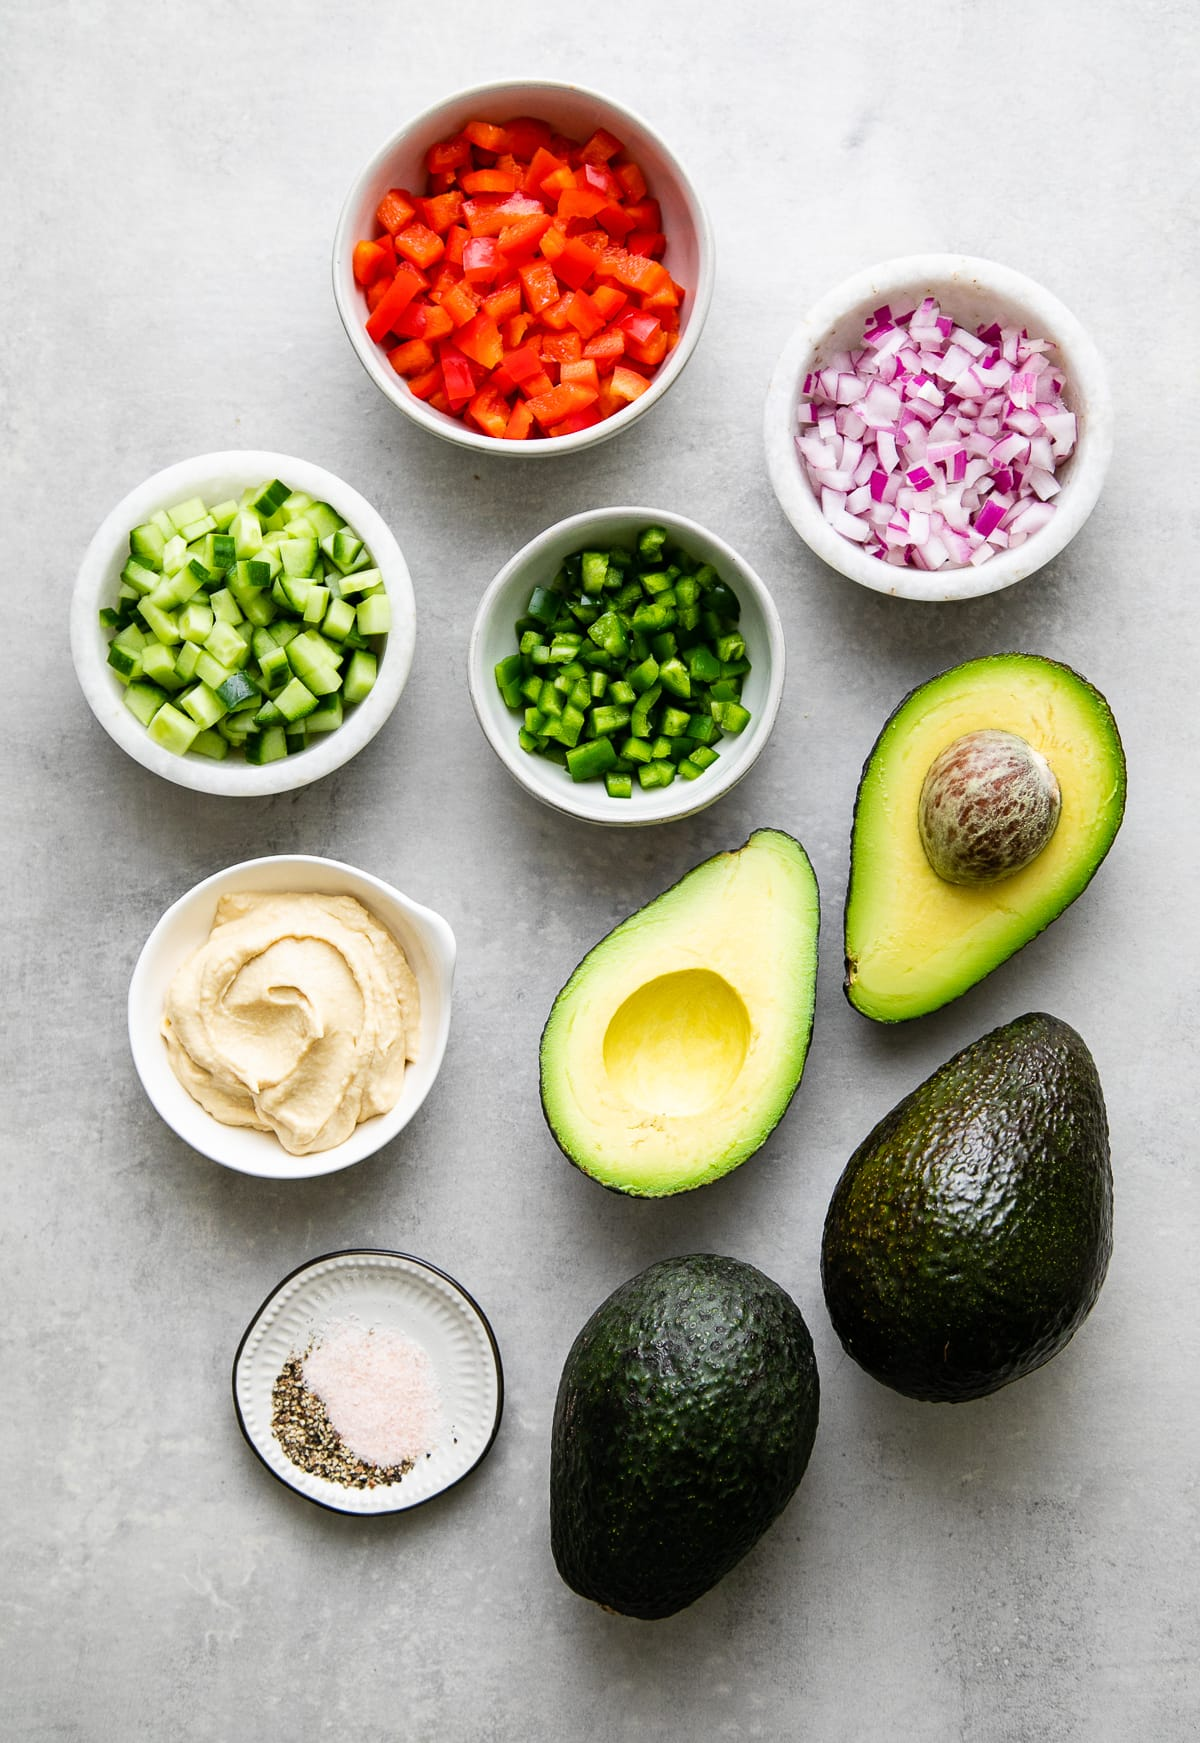 ingredients used to make stuffed avocados.